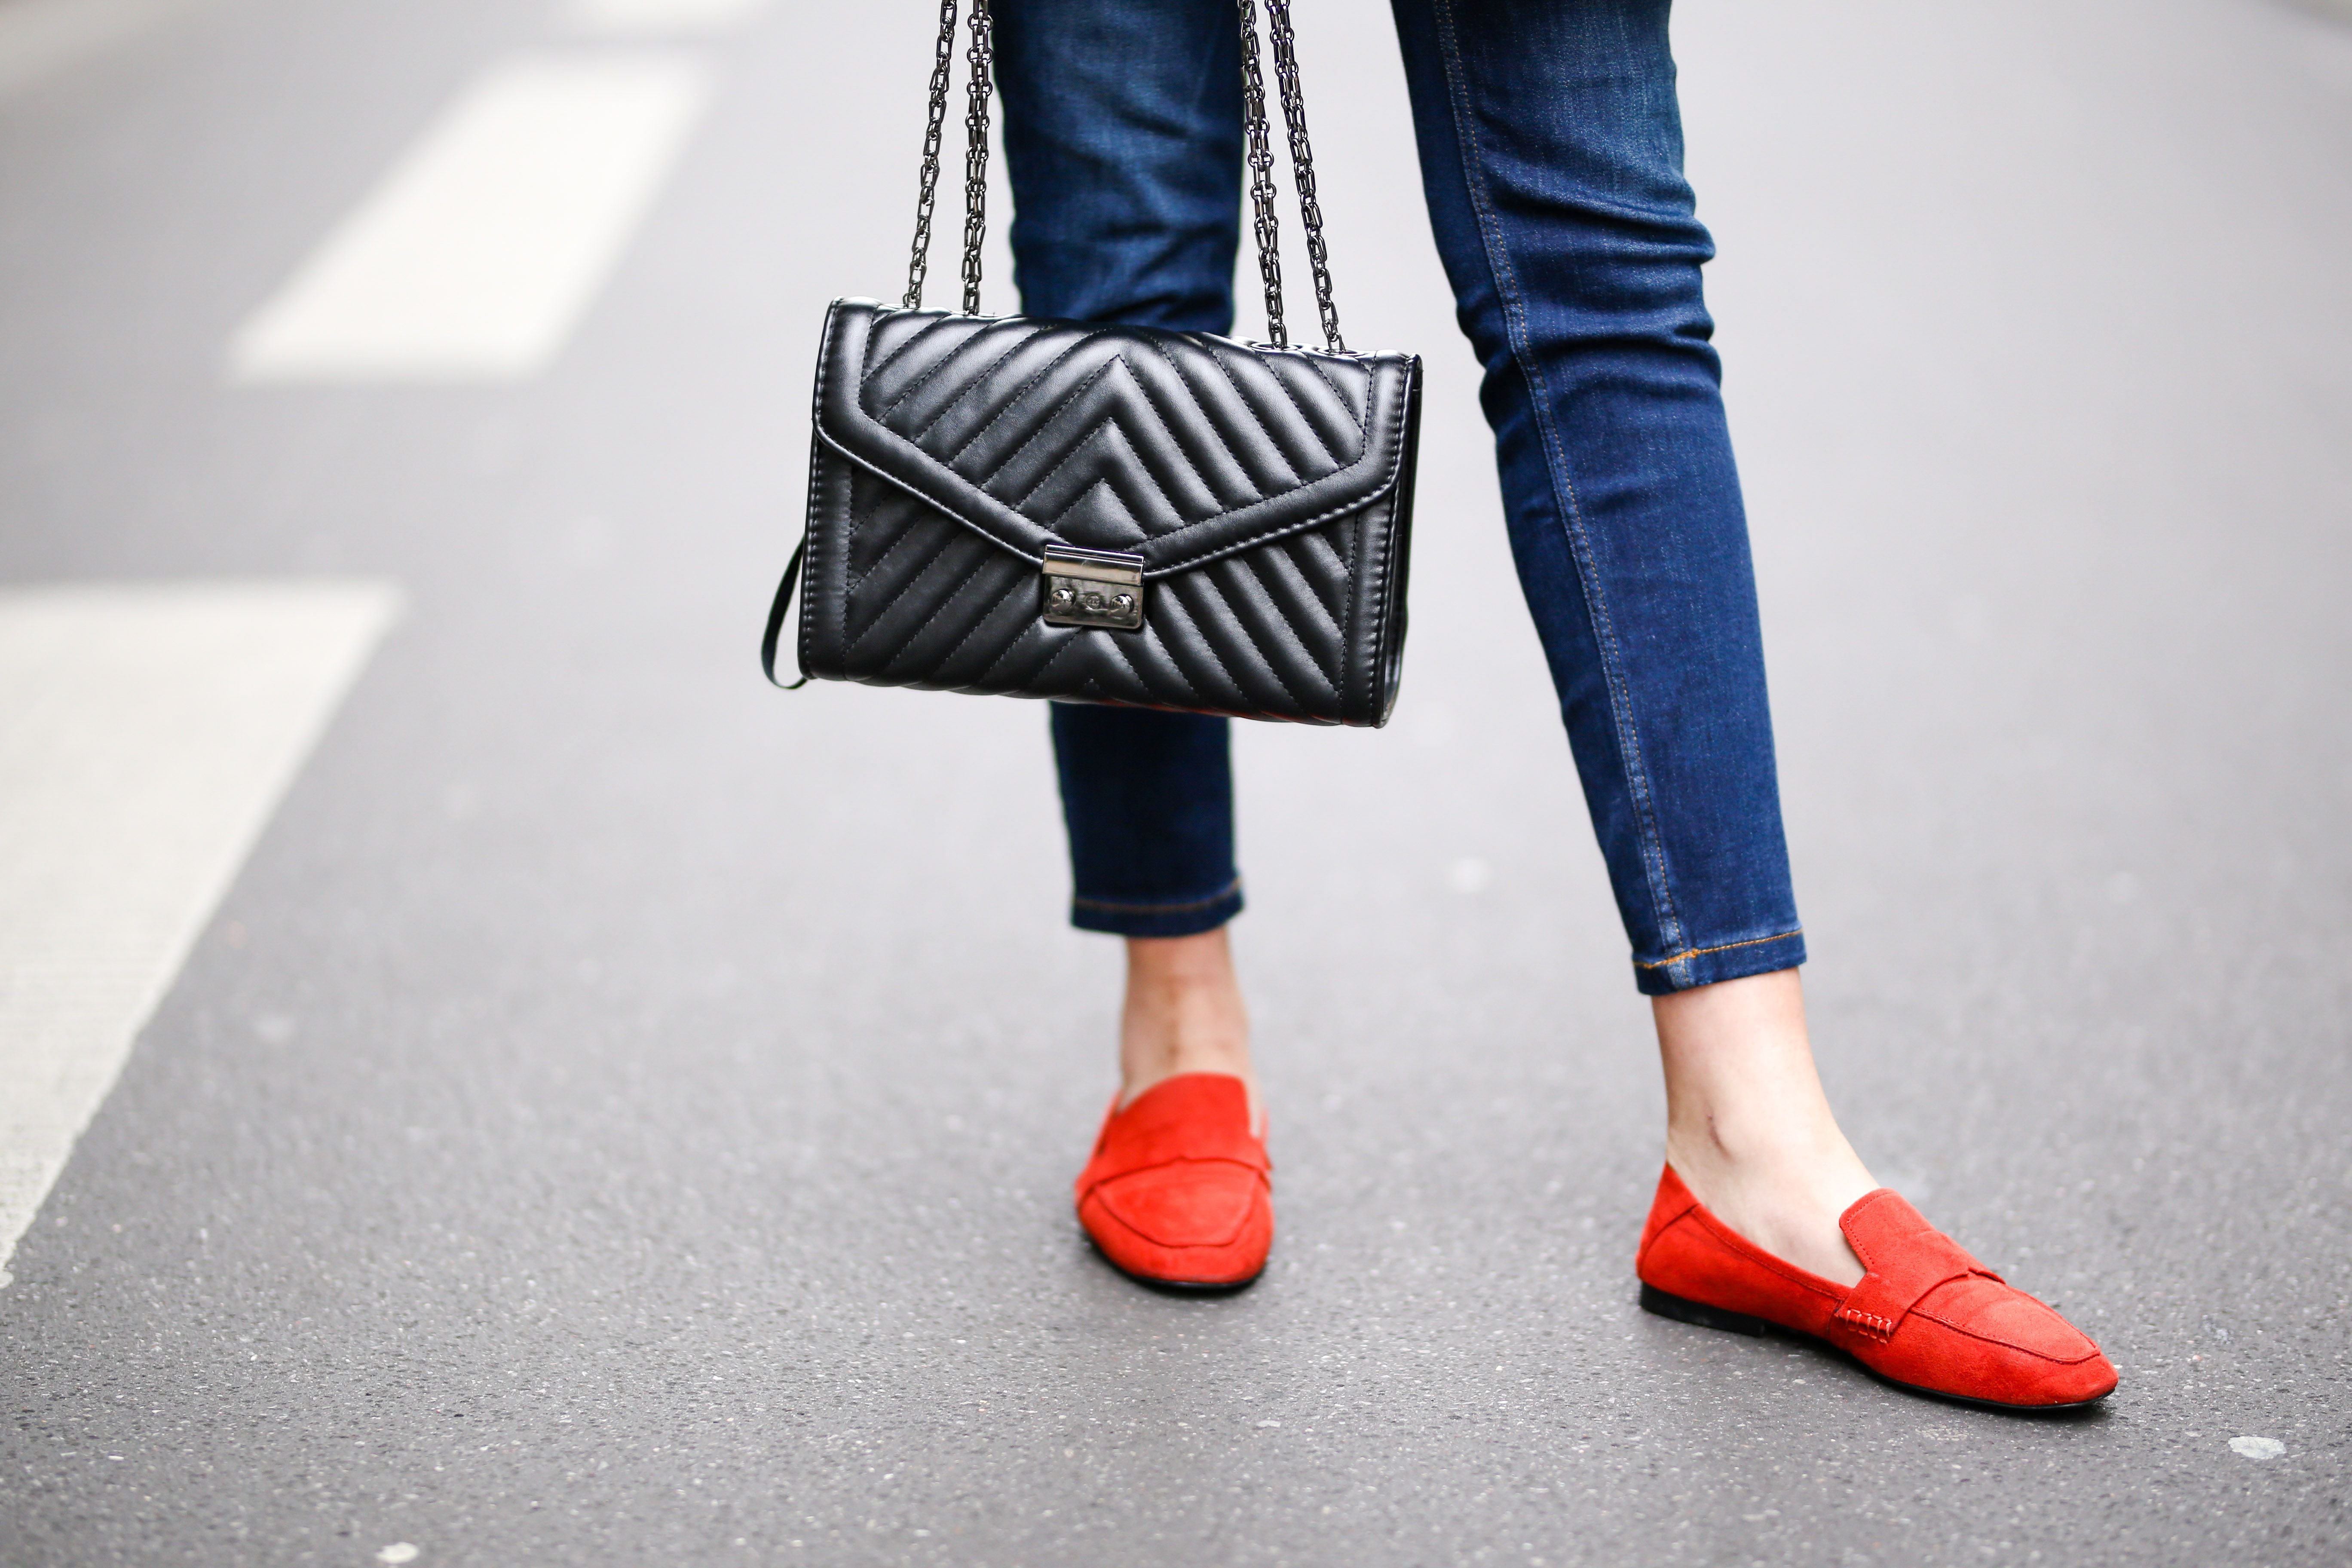 Shoes for skinny jeans - red shoes and skinny jeans picture